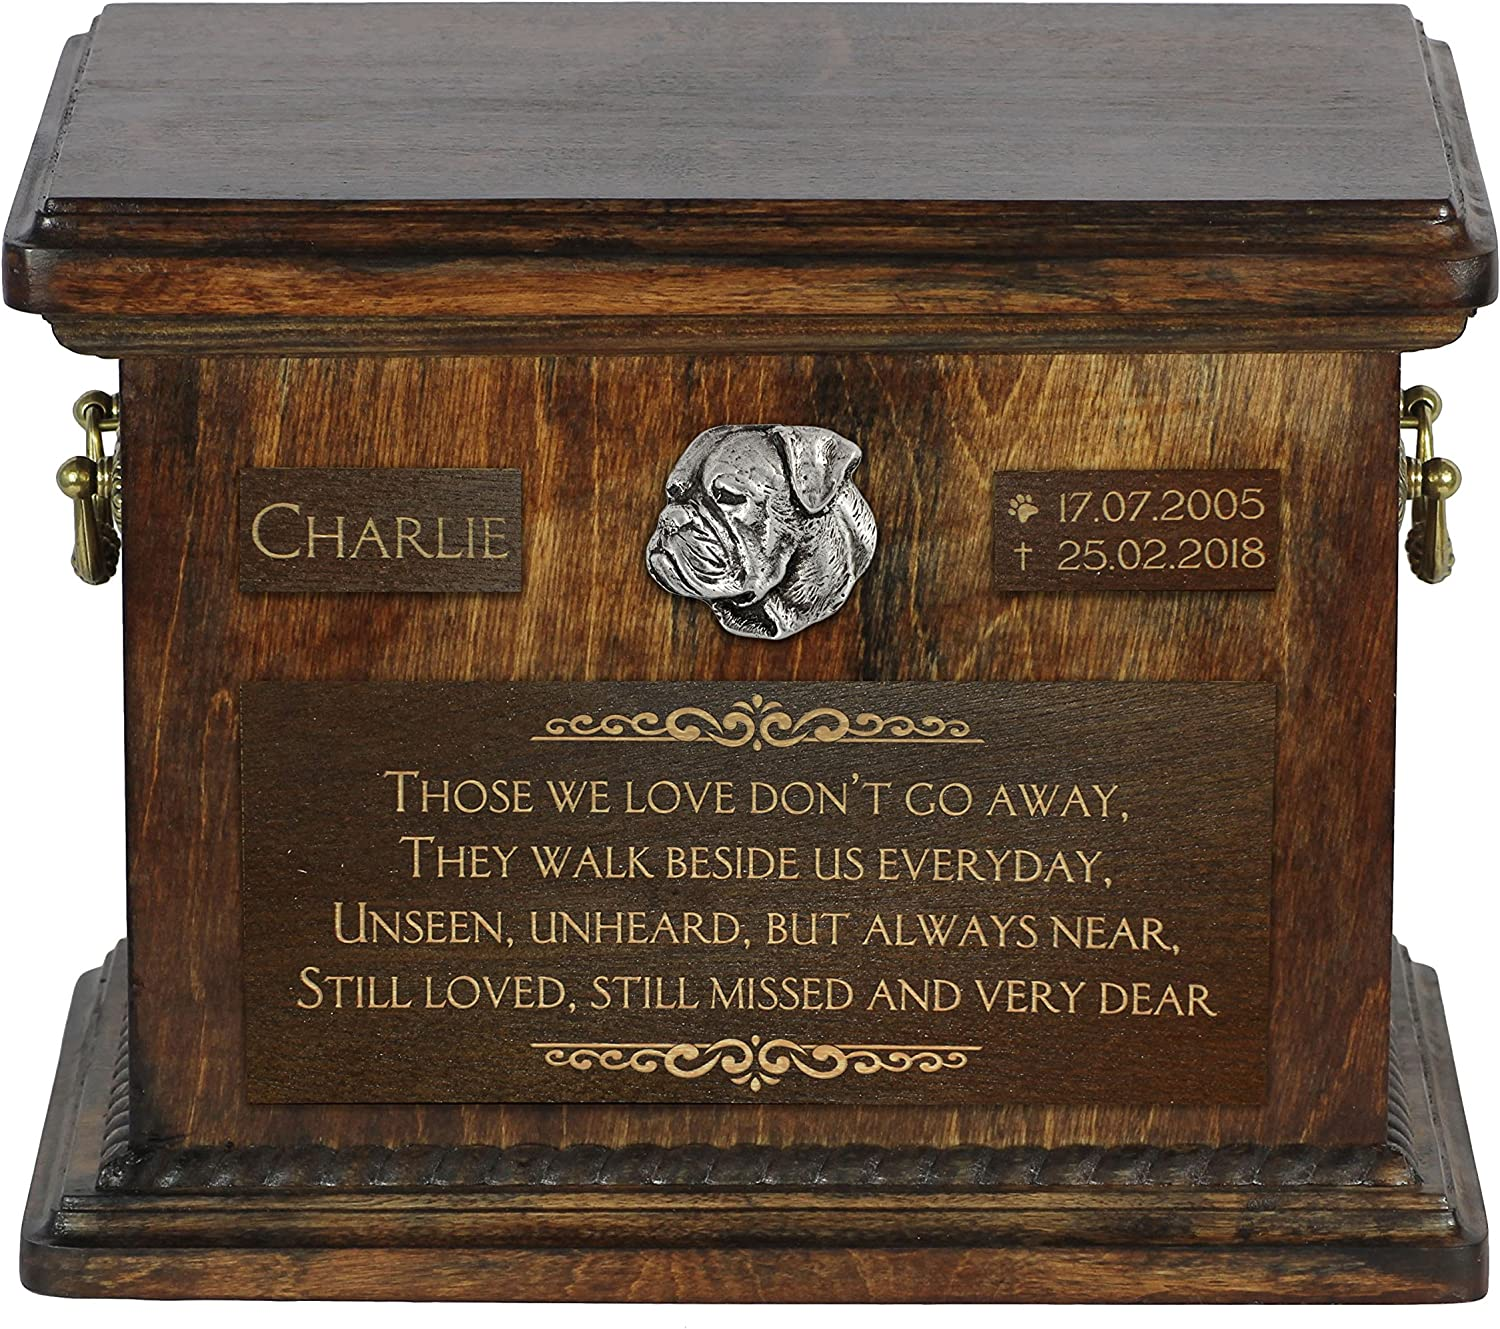 ArtDog Ltd. American Bulldog, urn for dog's ashes with relief and sentence with your dog name and date